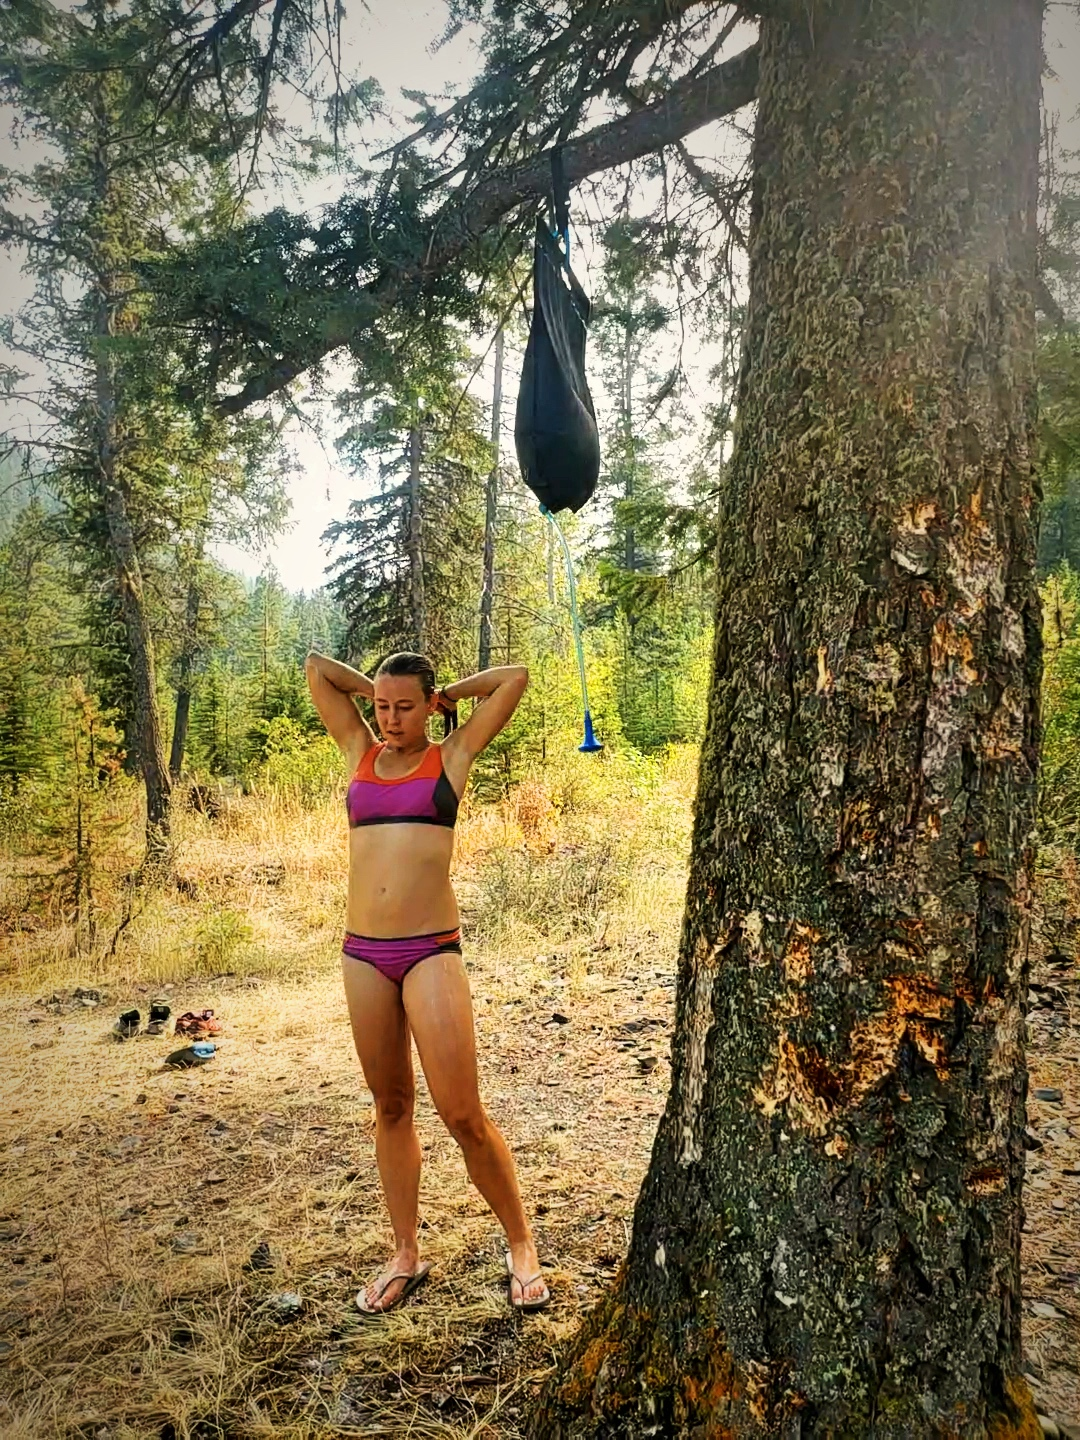 Using our solar shower while camping in the Wallowas in Oregon. We rarely have used our solar shower.